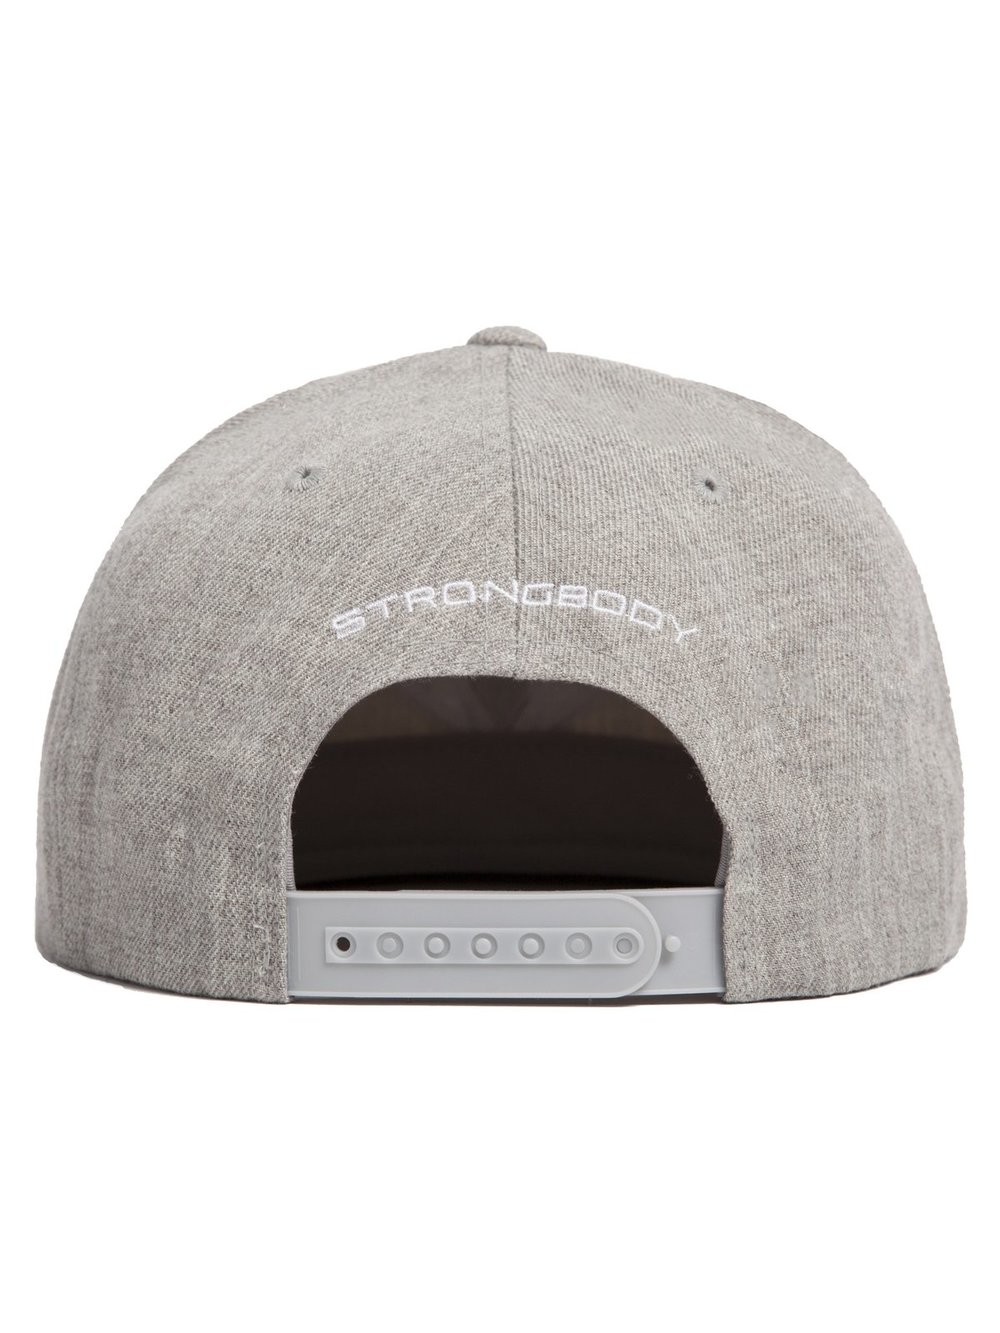 grey_hat_back_1200x.jpg